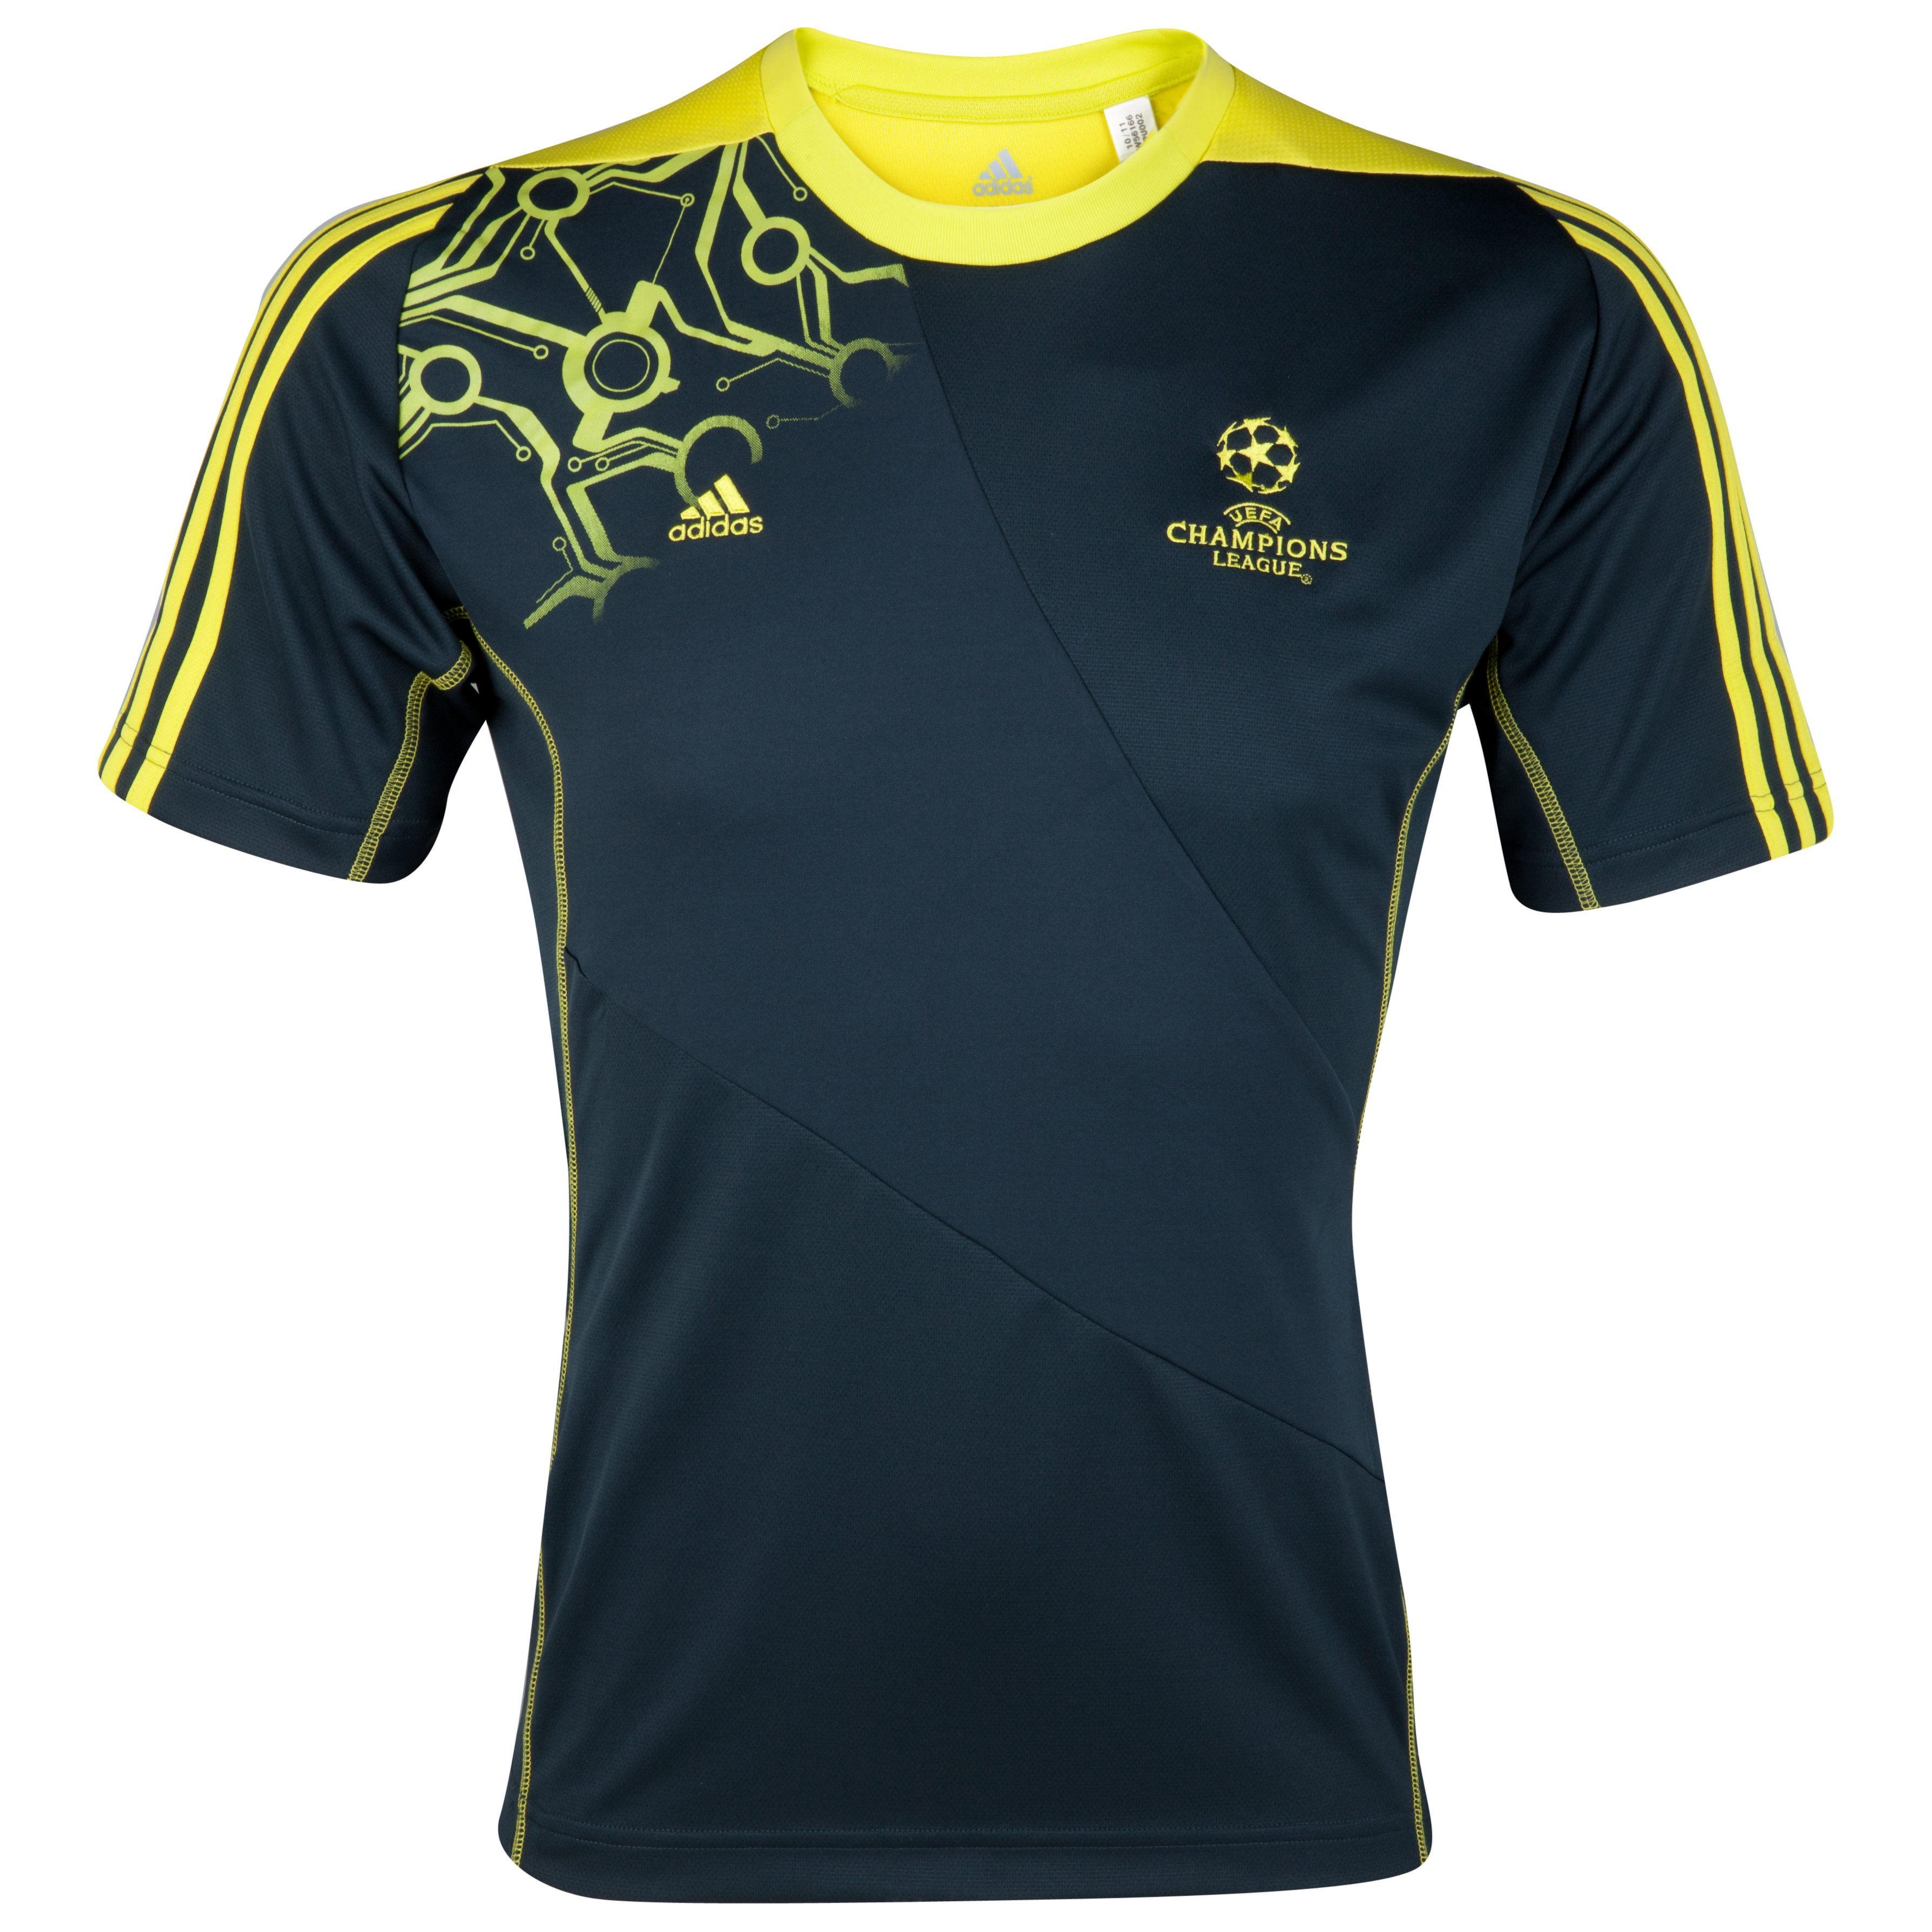 adidas Predator UEFA Champions League Tee - Tech Onix/Lab Lime